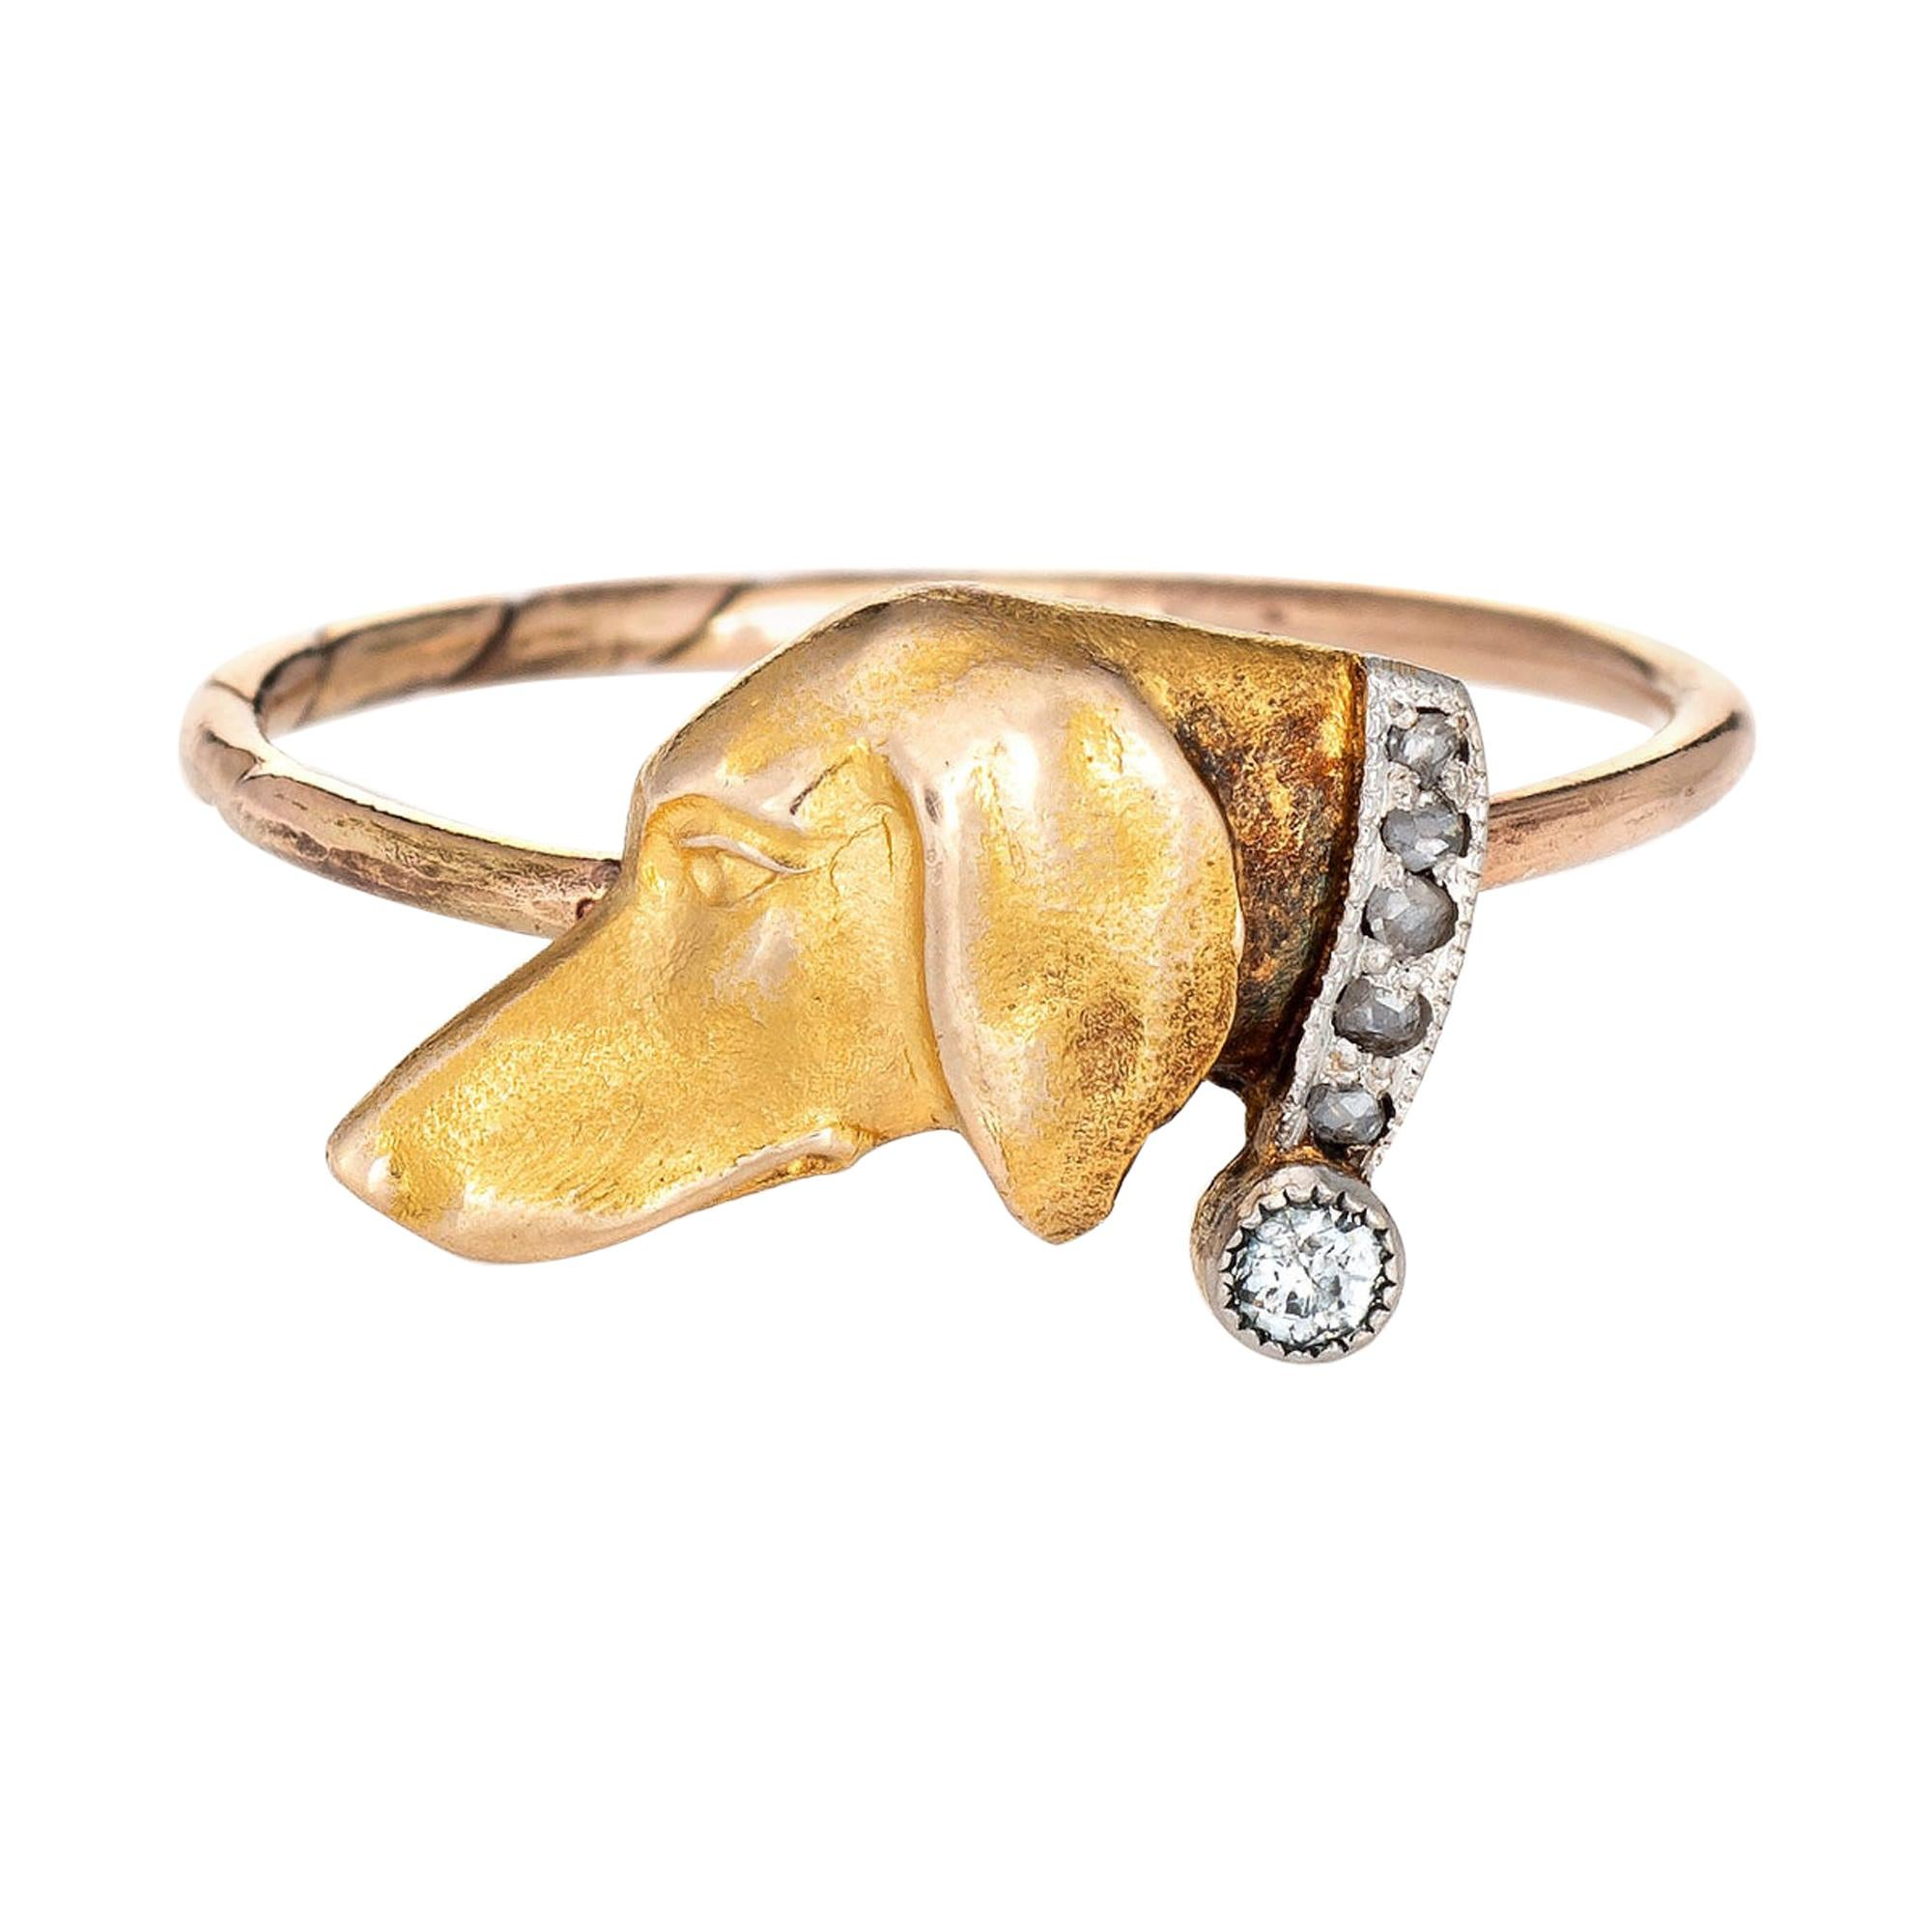 Antique Victorian Dog Conversion Ring 14k Yellow Gold Hound Animal Jewelry